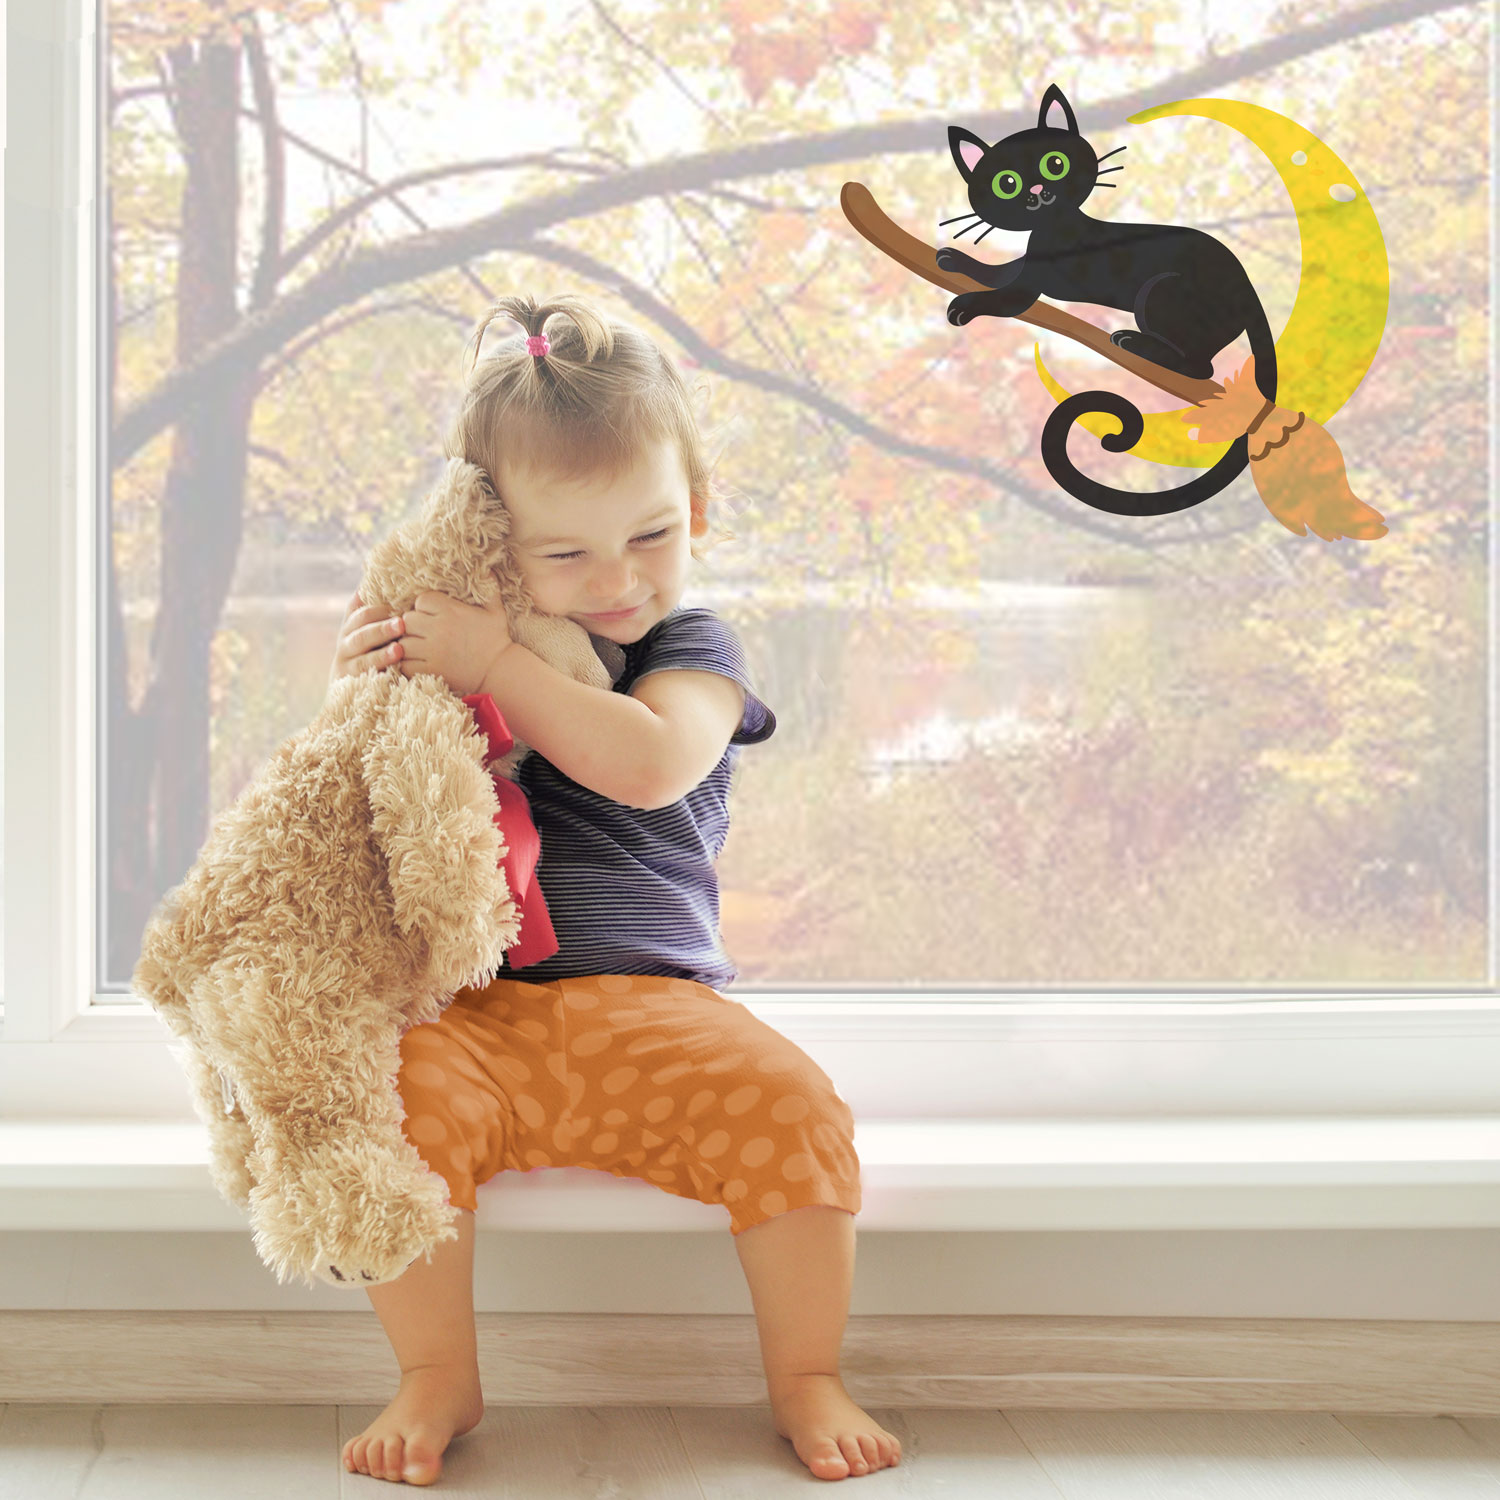 Cat on a broomstick window sticker